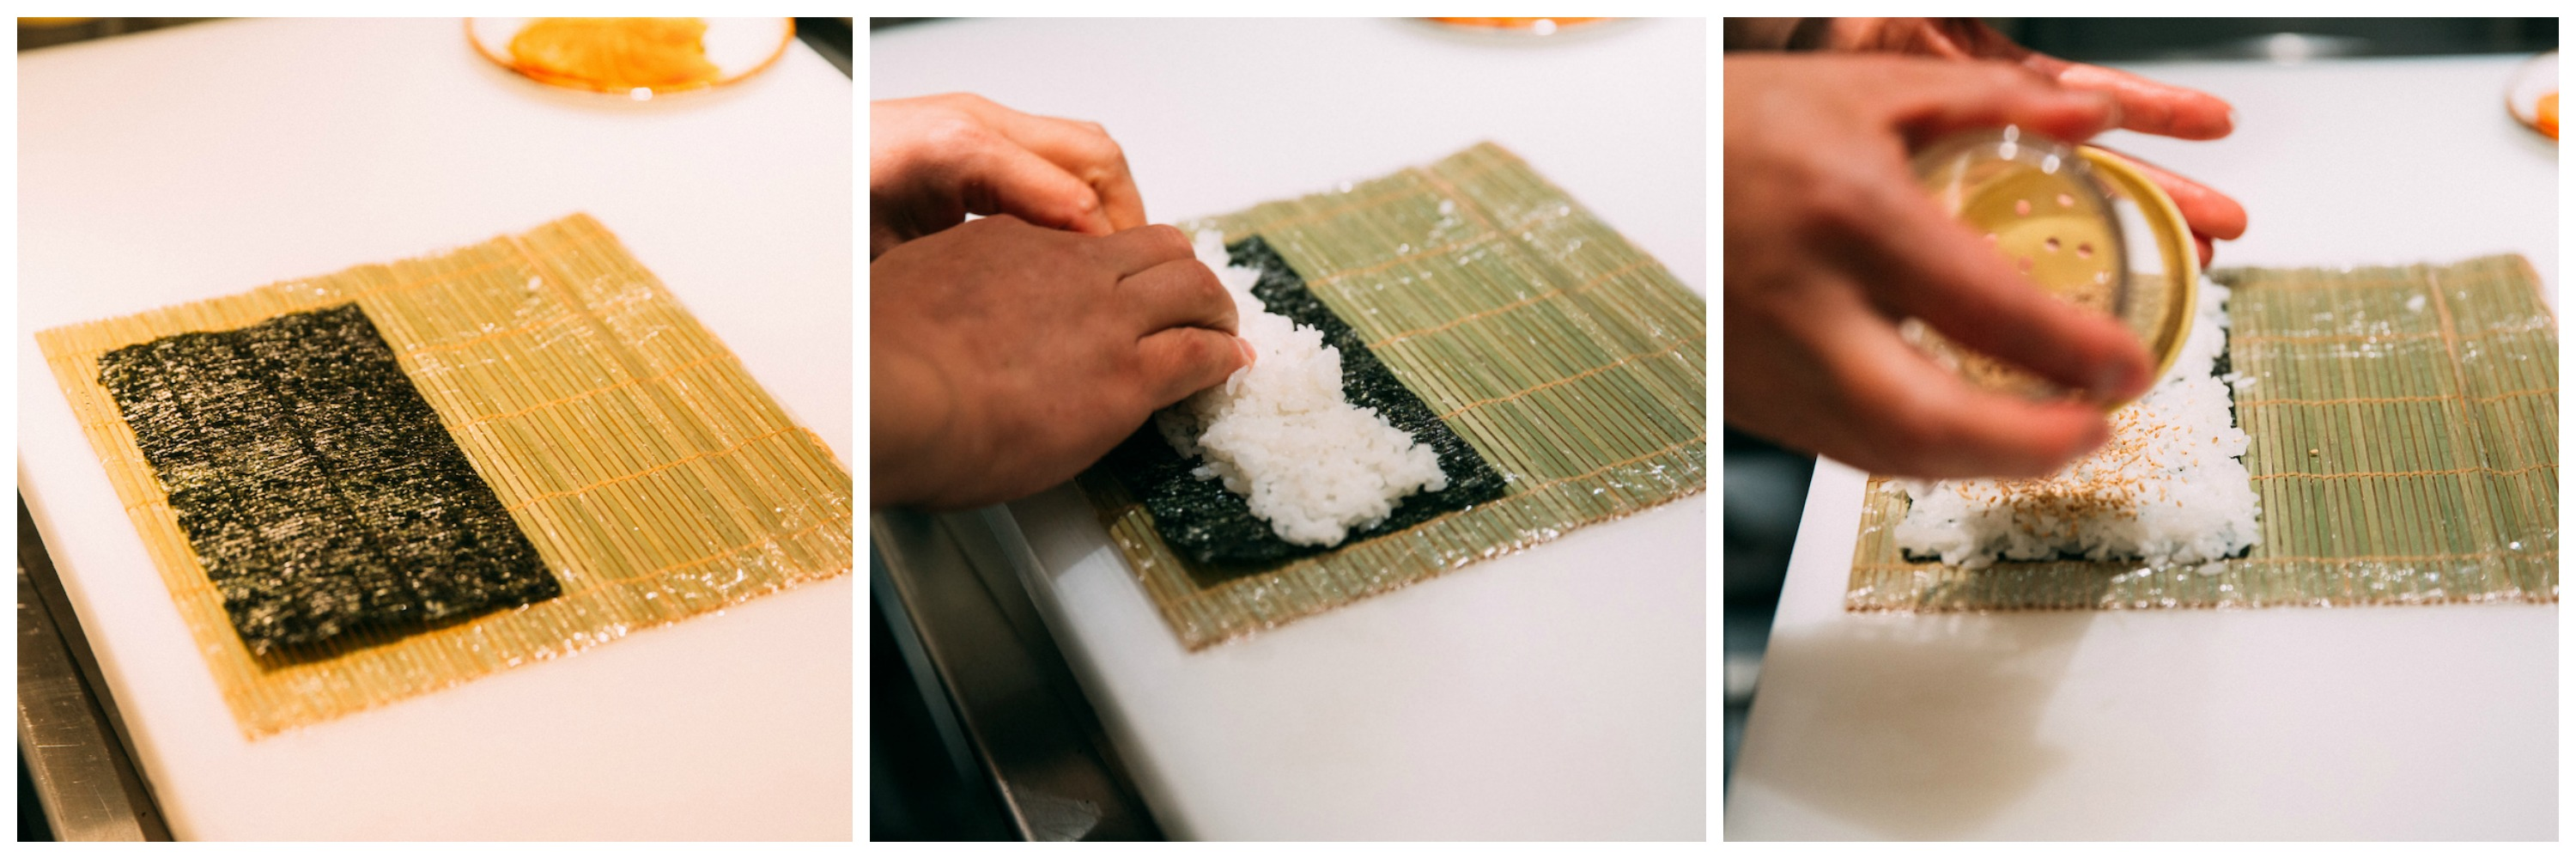 Step-by-step of hands rolling sushi